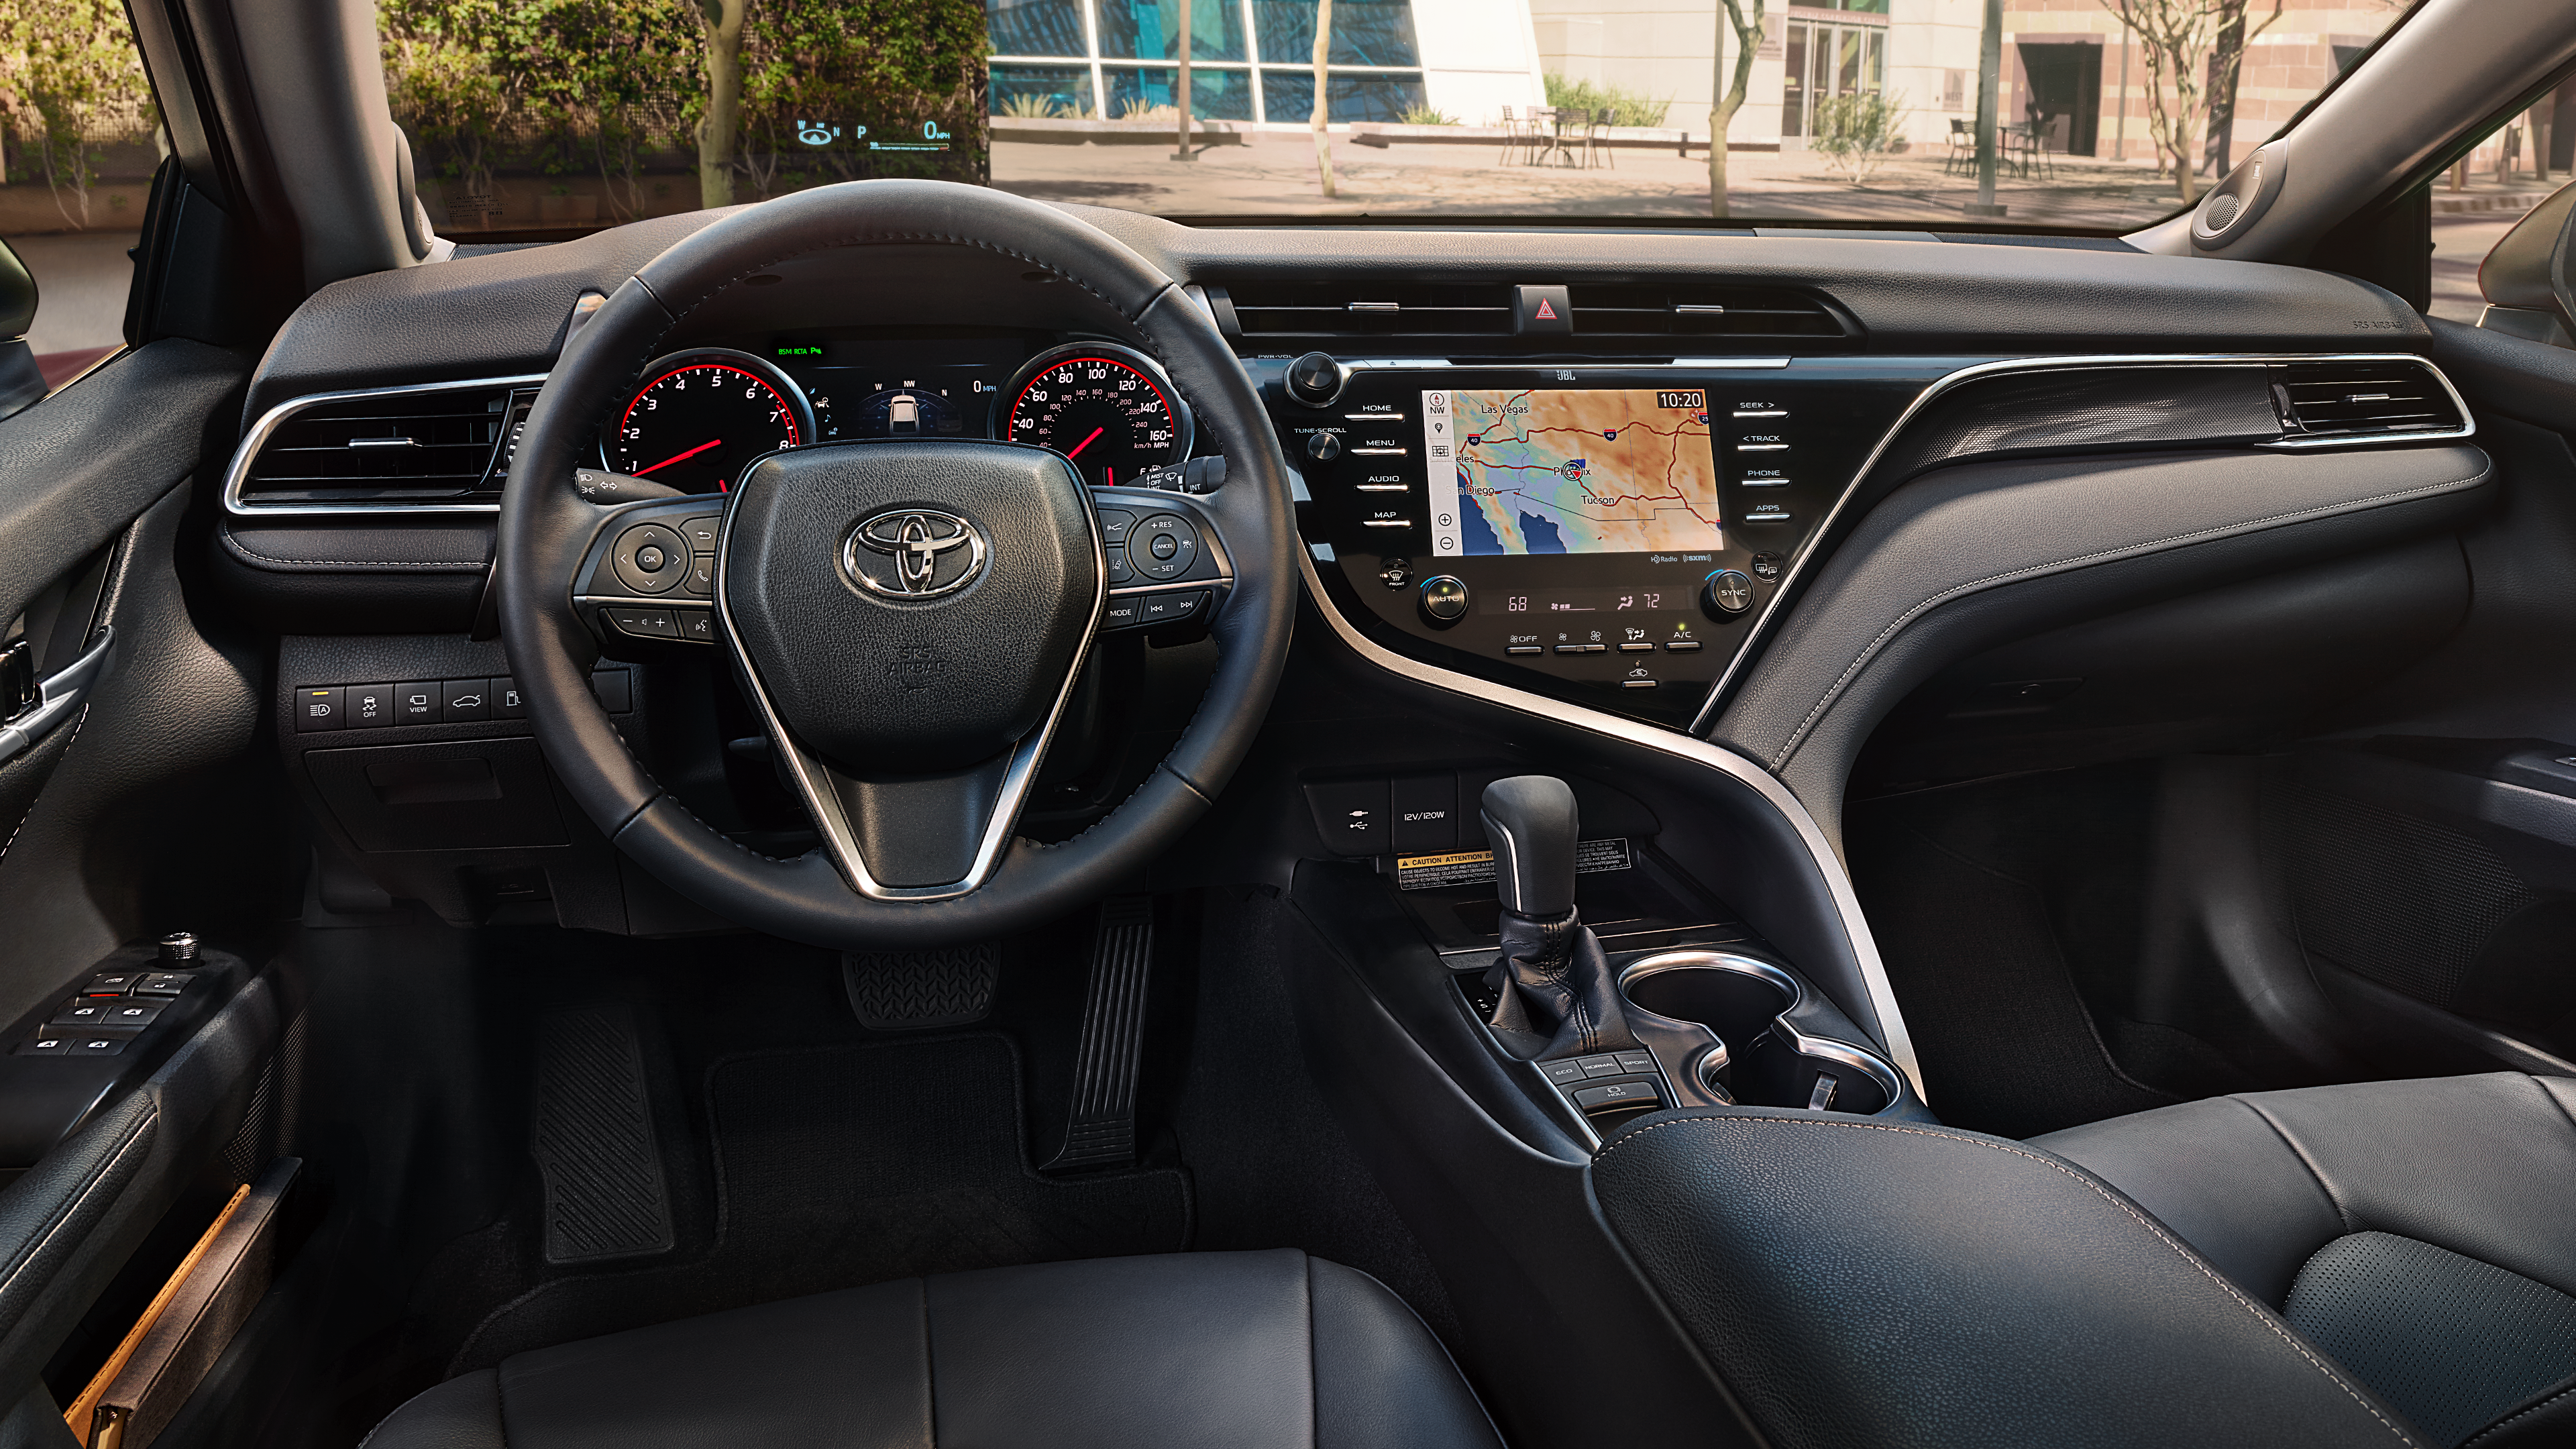 New Toyota Camry Interior Features